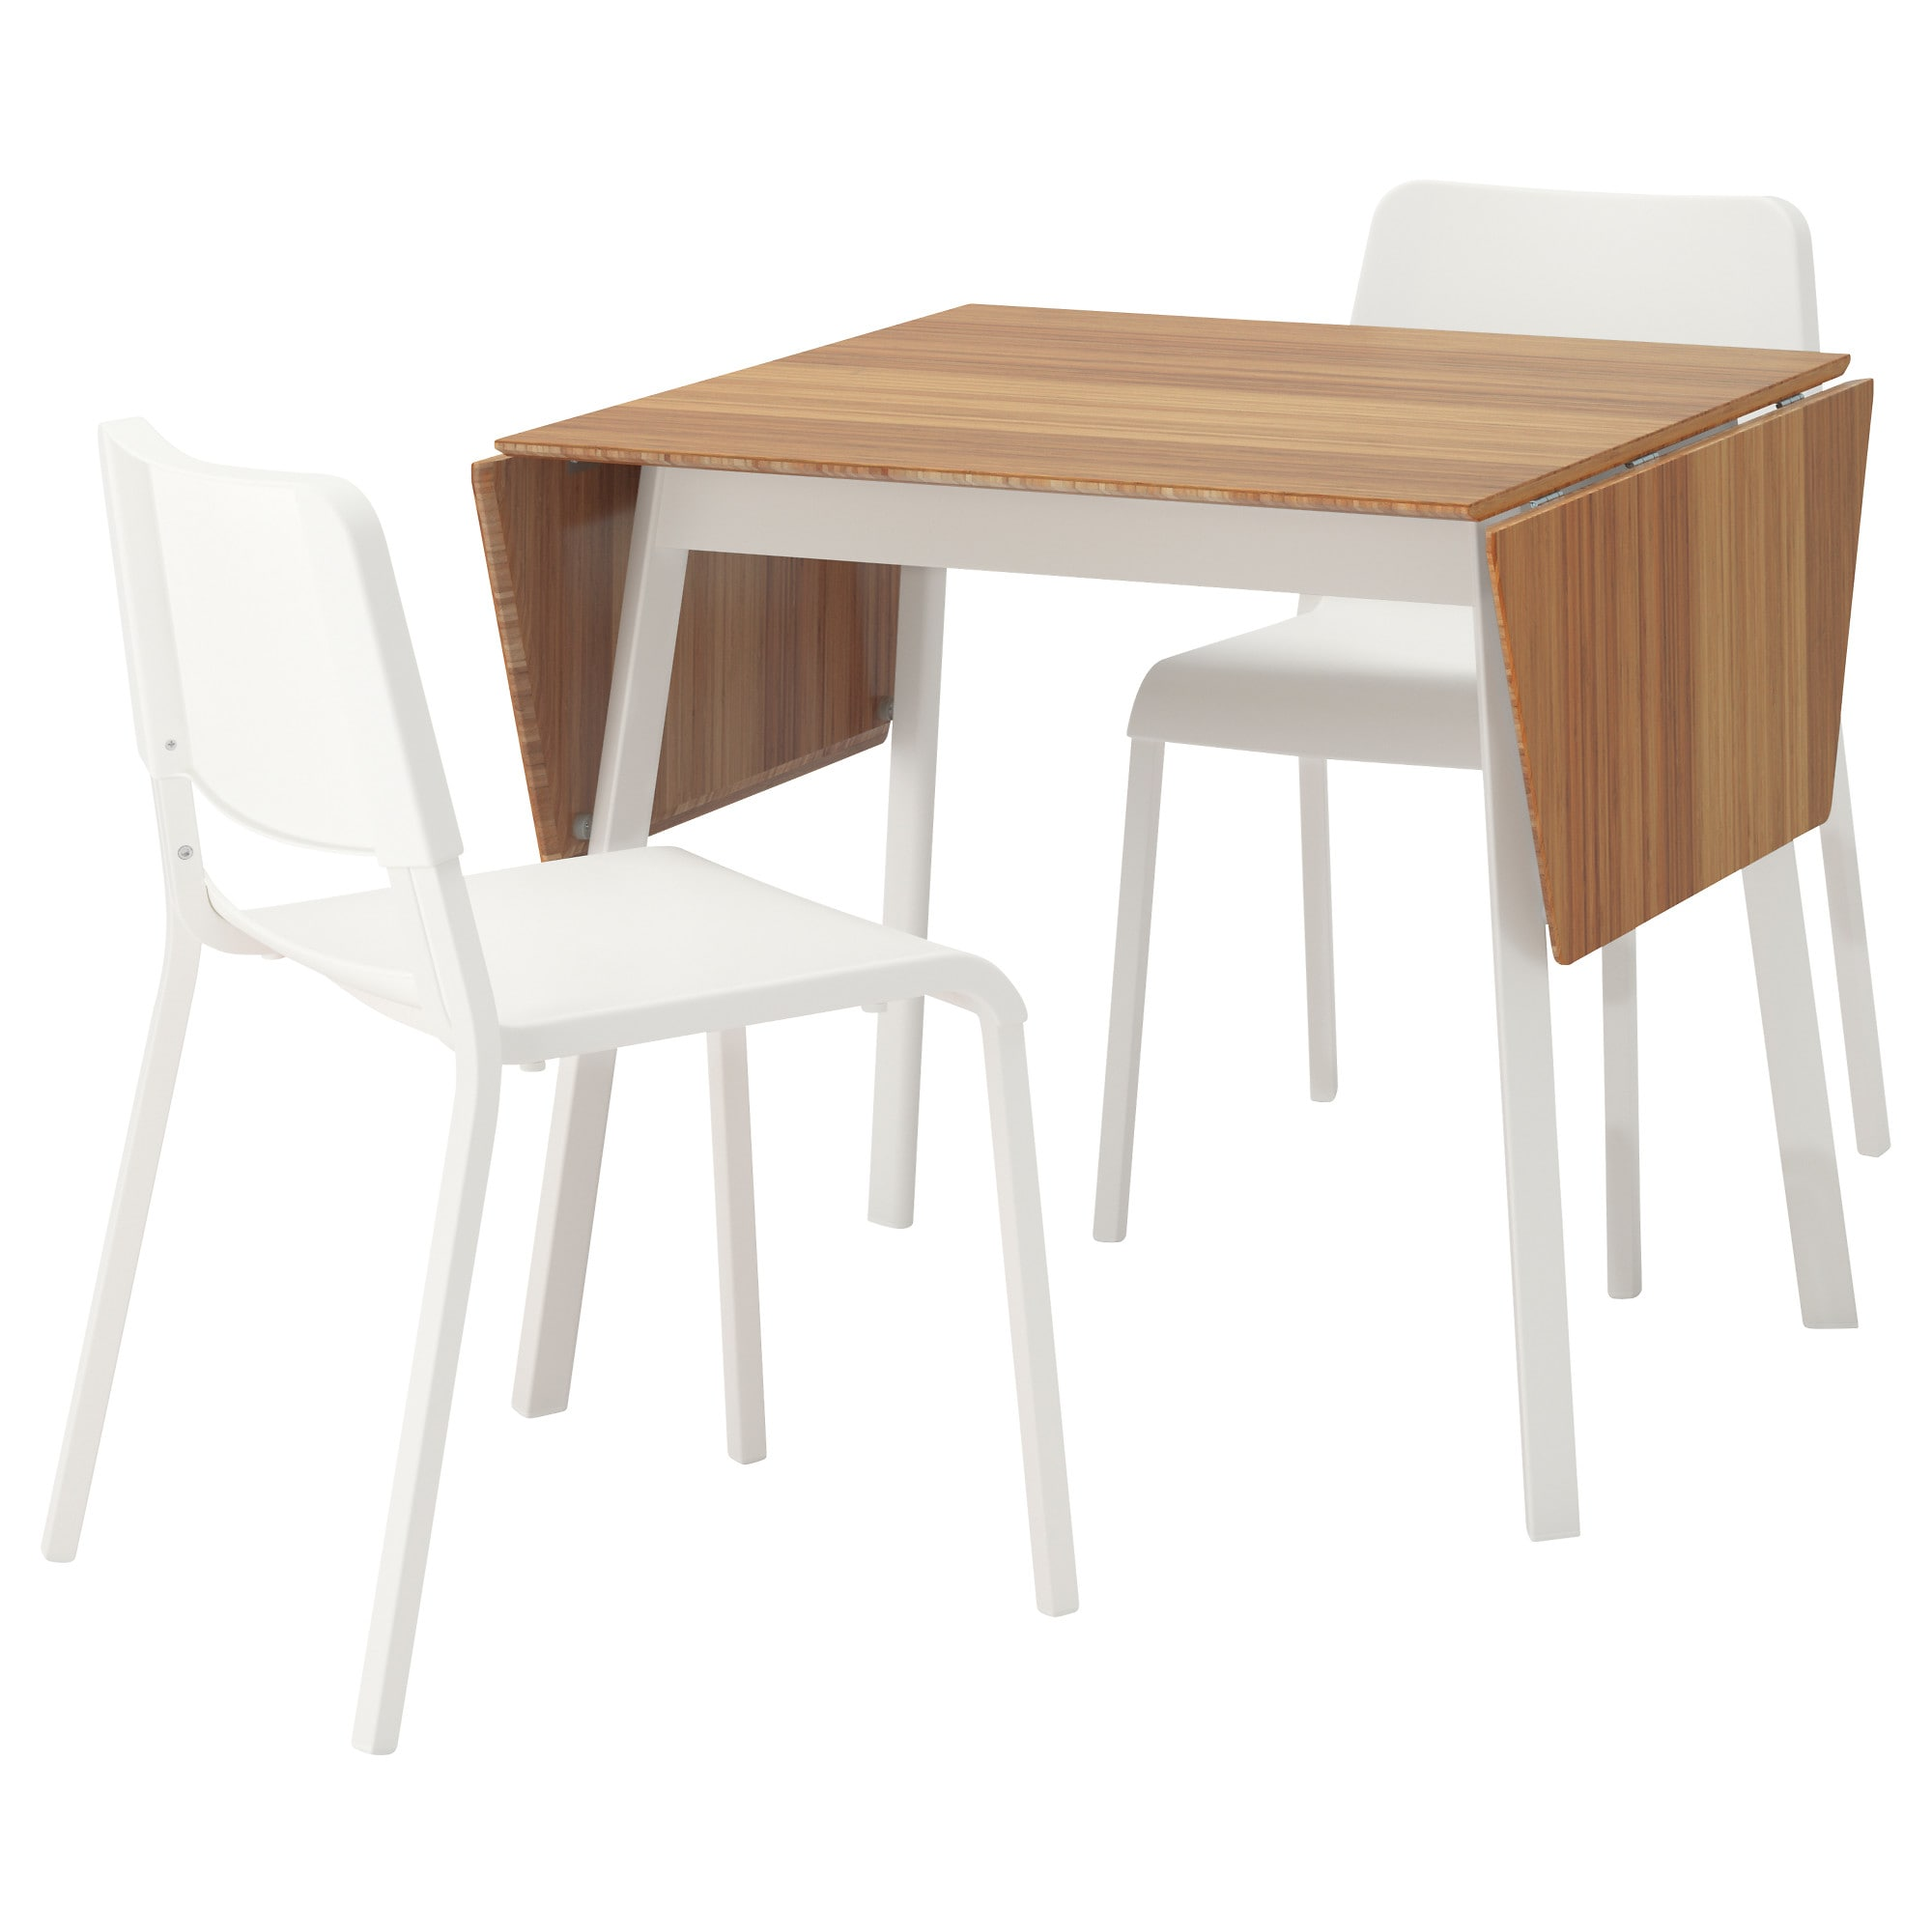 Ikea Ps 2017 Teodores Table And 2 Chairs